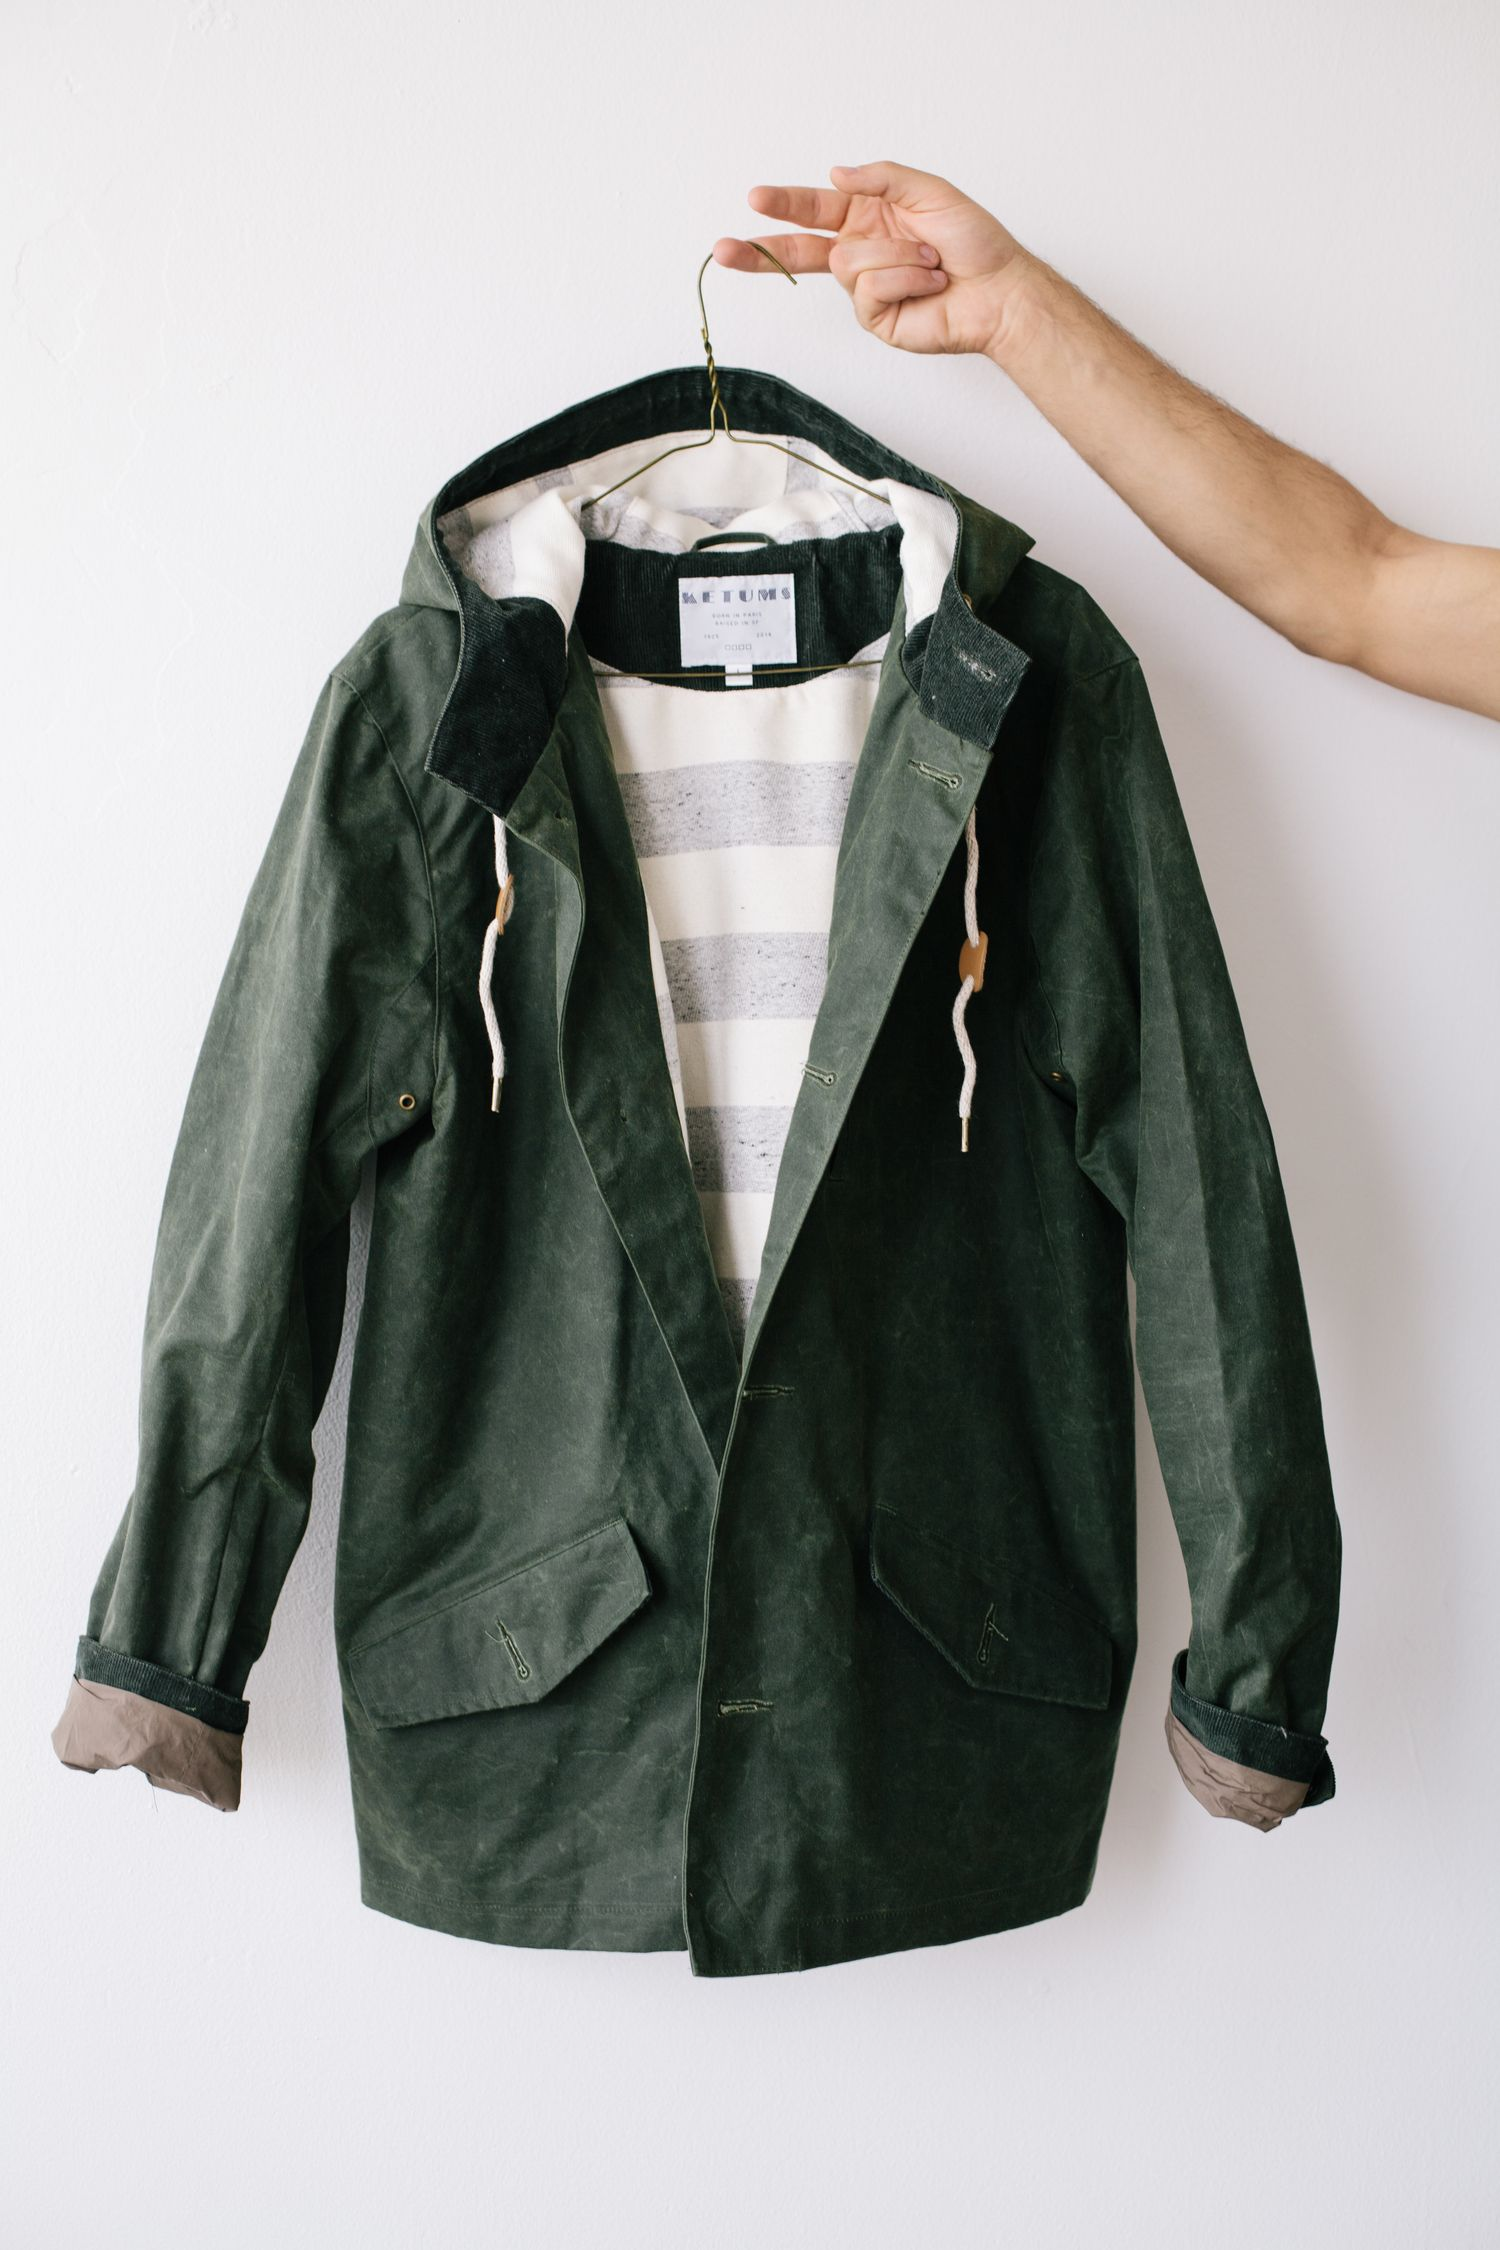 8208519a2 Doesnt have to be this but i need a rain jacket